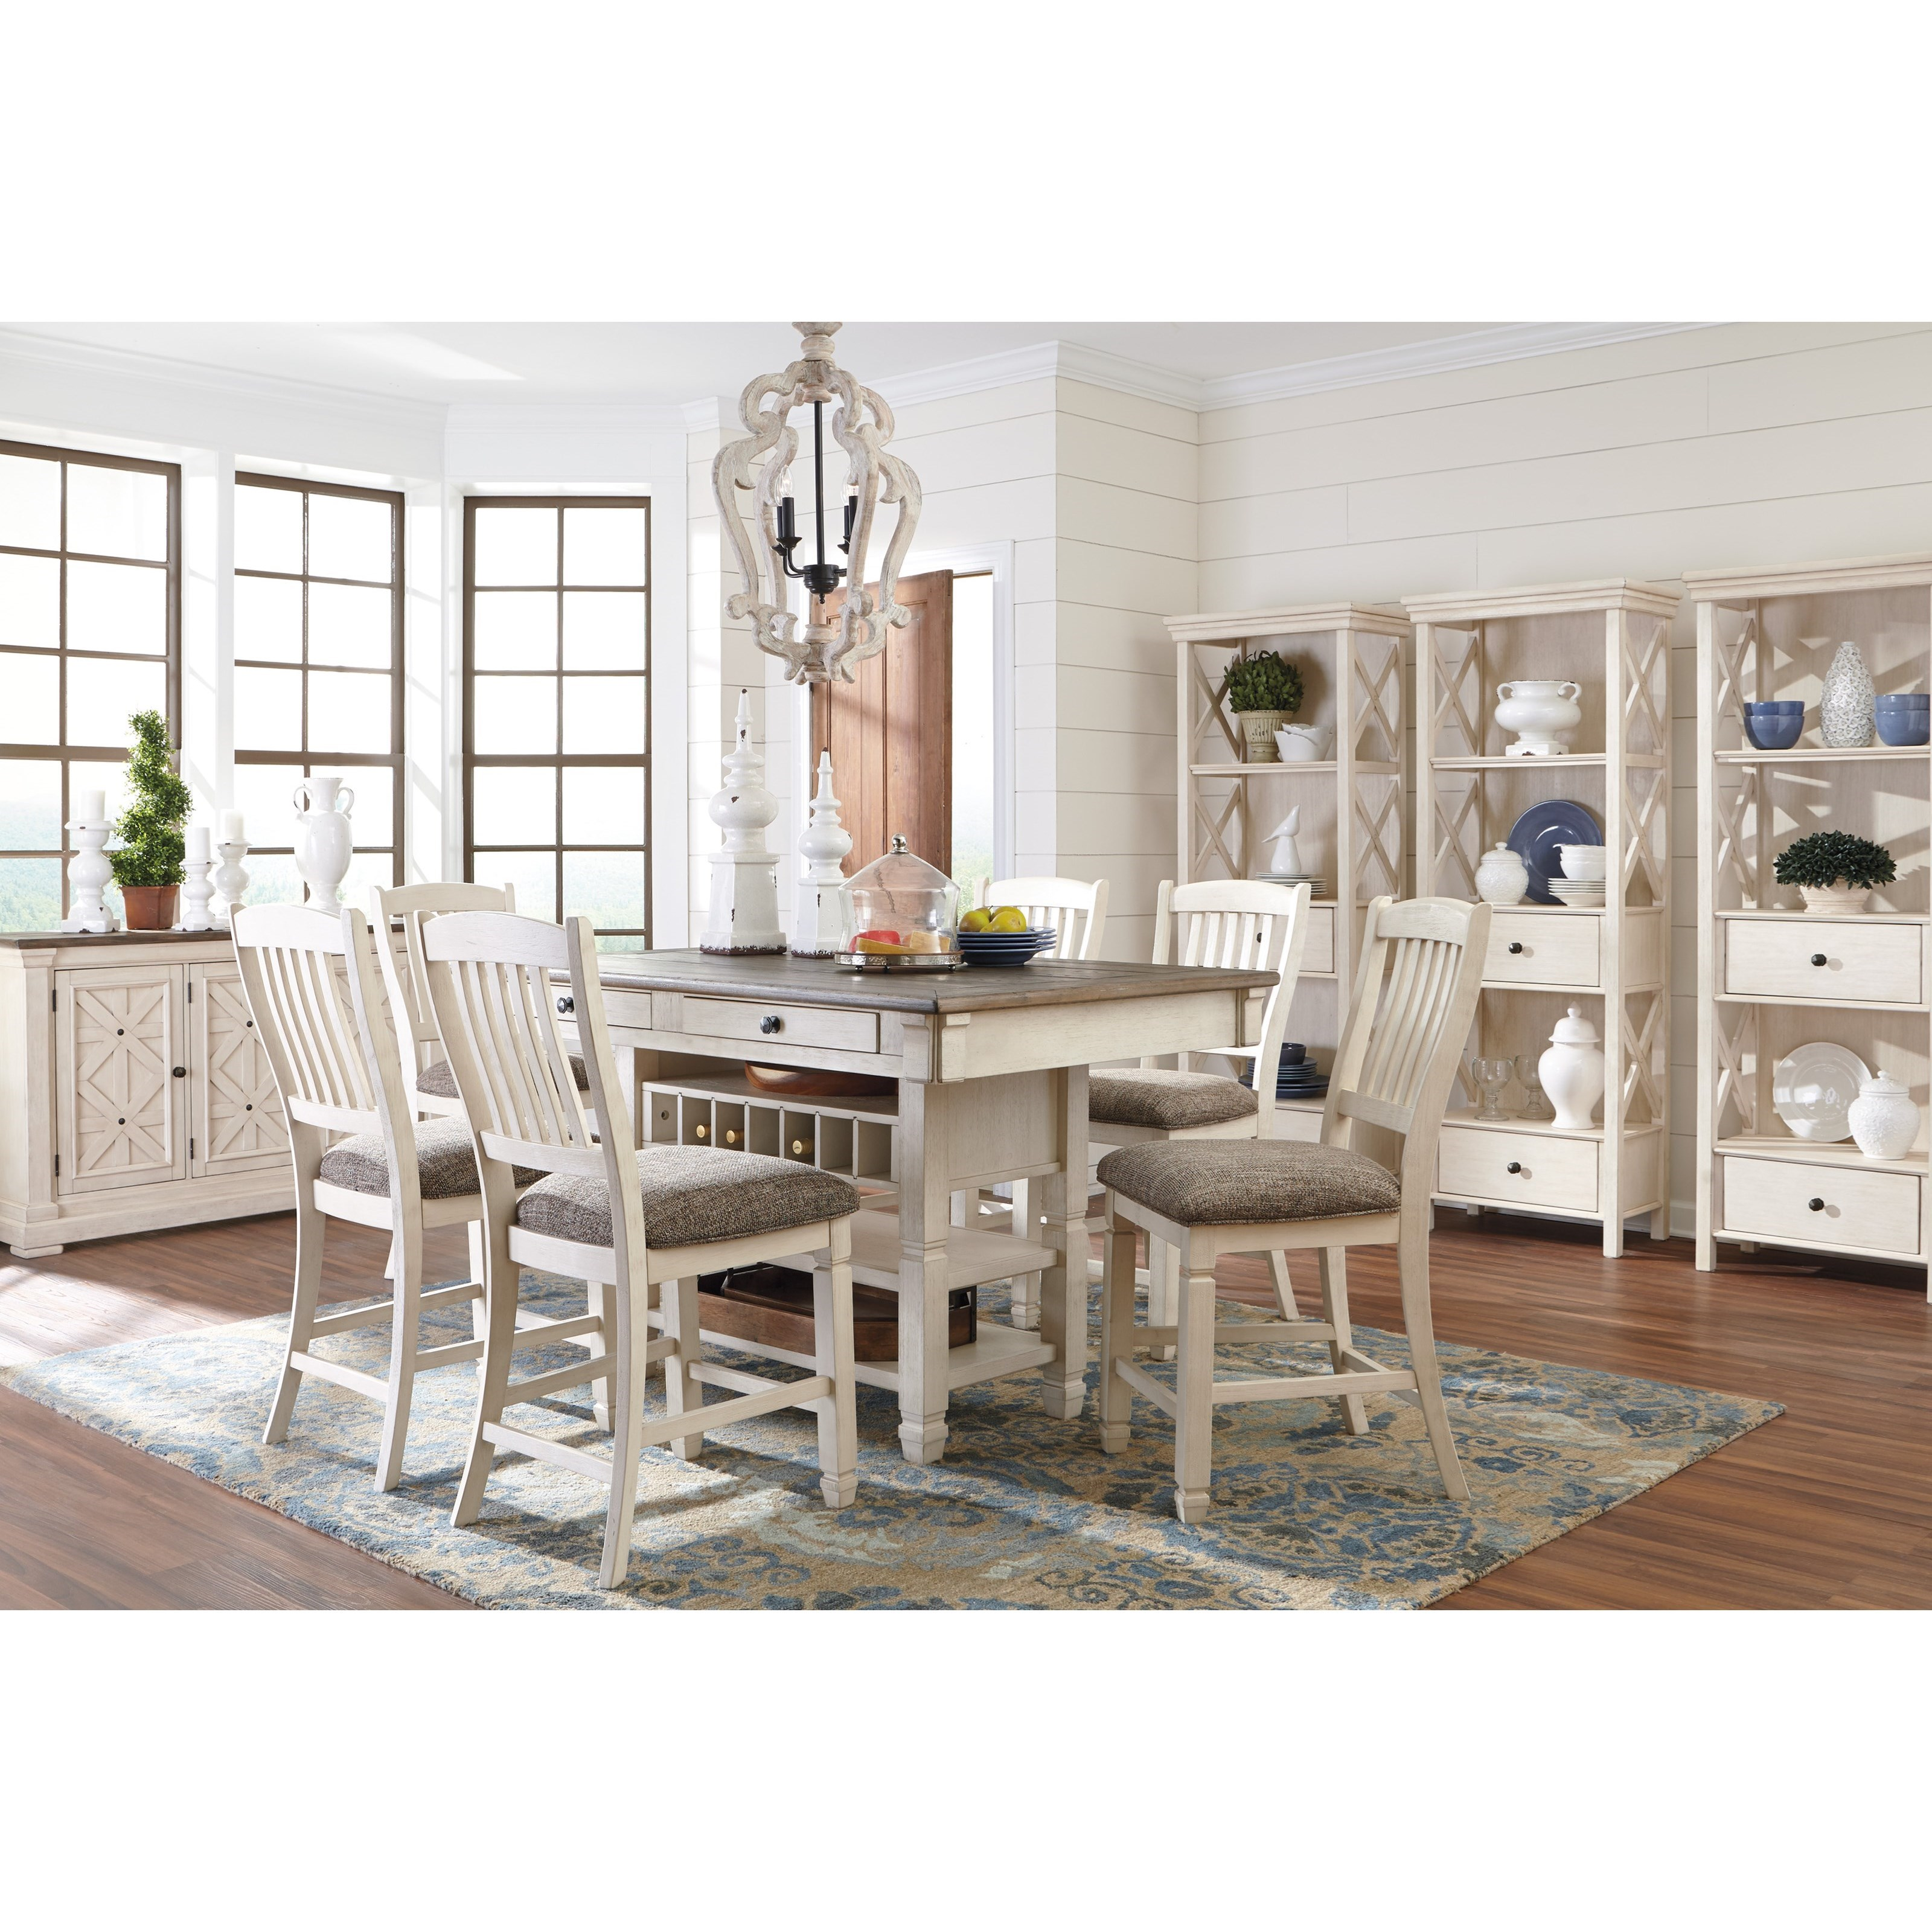 Ashley Signature Design Bolanburg Casual Dining Room Group   Item Number:  D647 Casual Dining Room